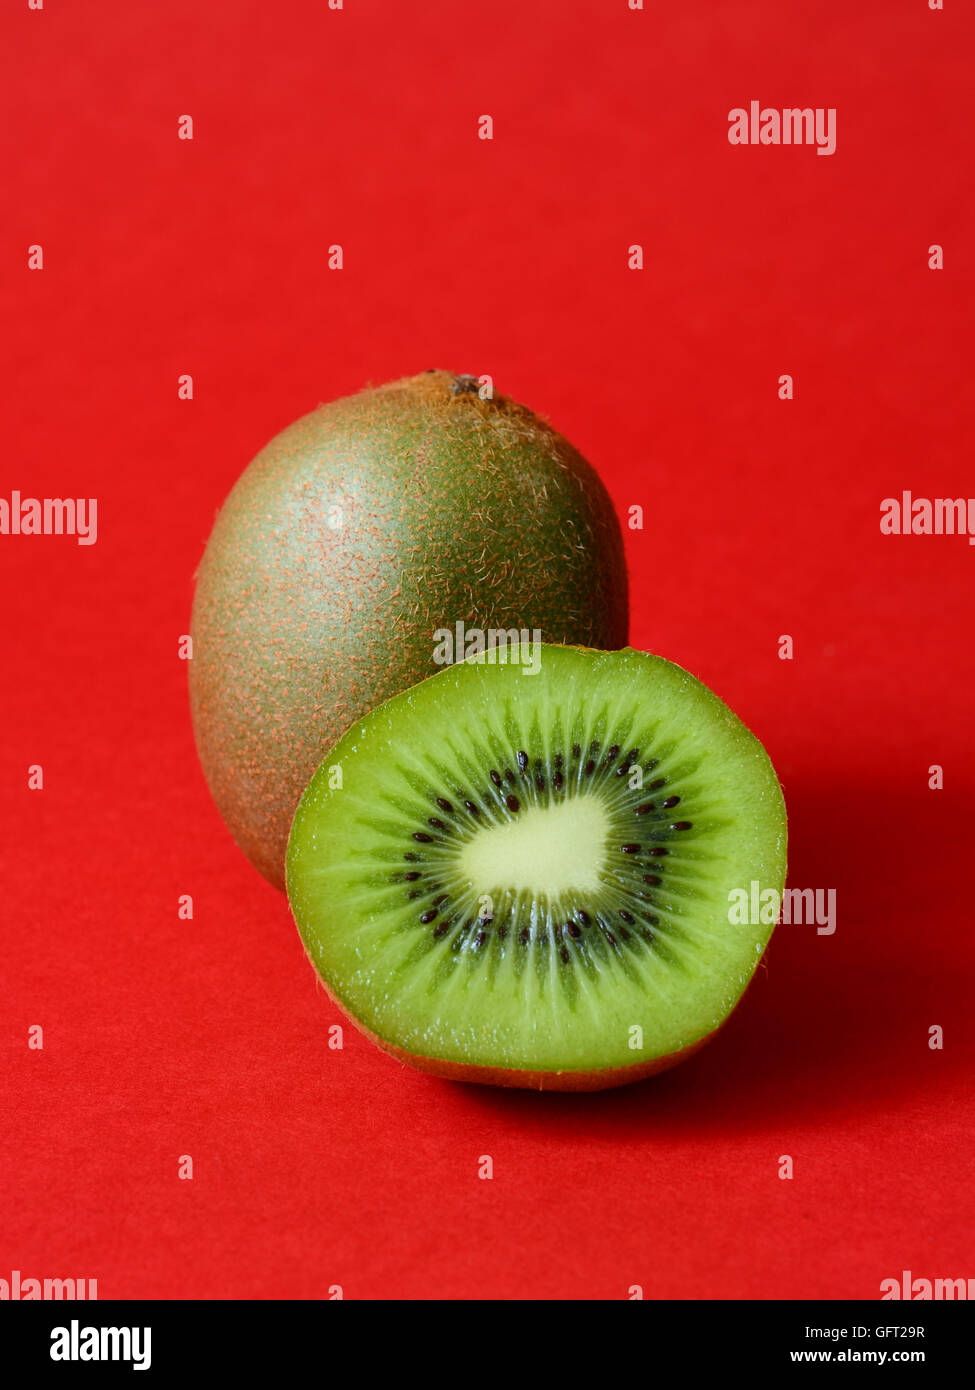 Juicy kiwi fruit on a red background - Stock Image